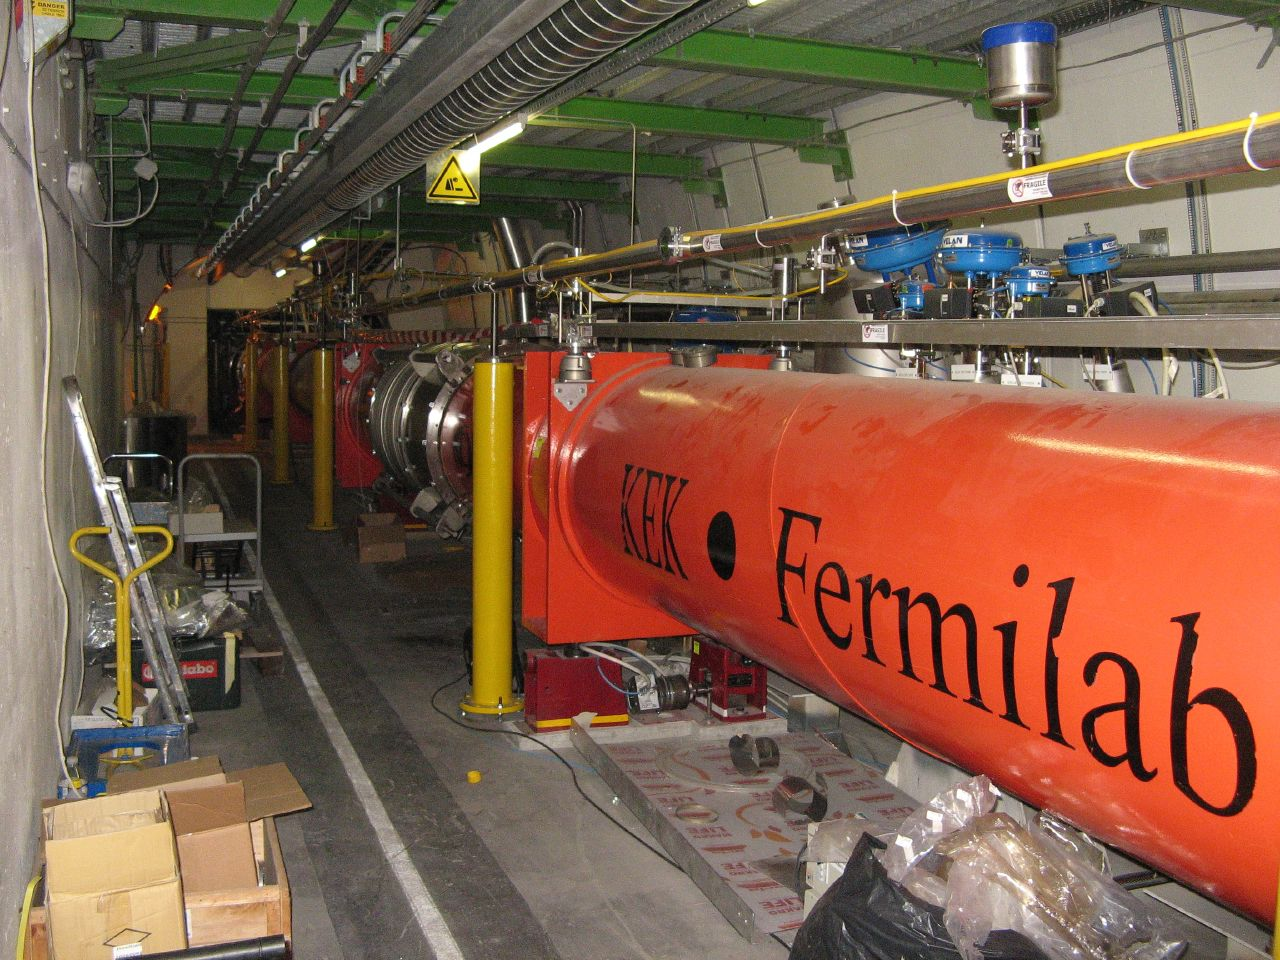 Superconducting quadrupole electromagnets at the Large Hadron Collider